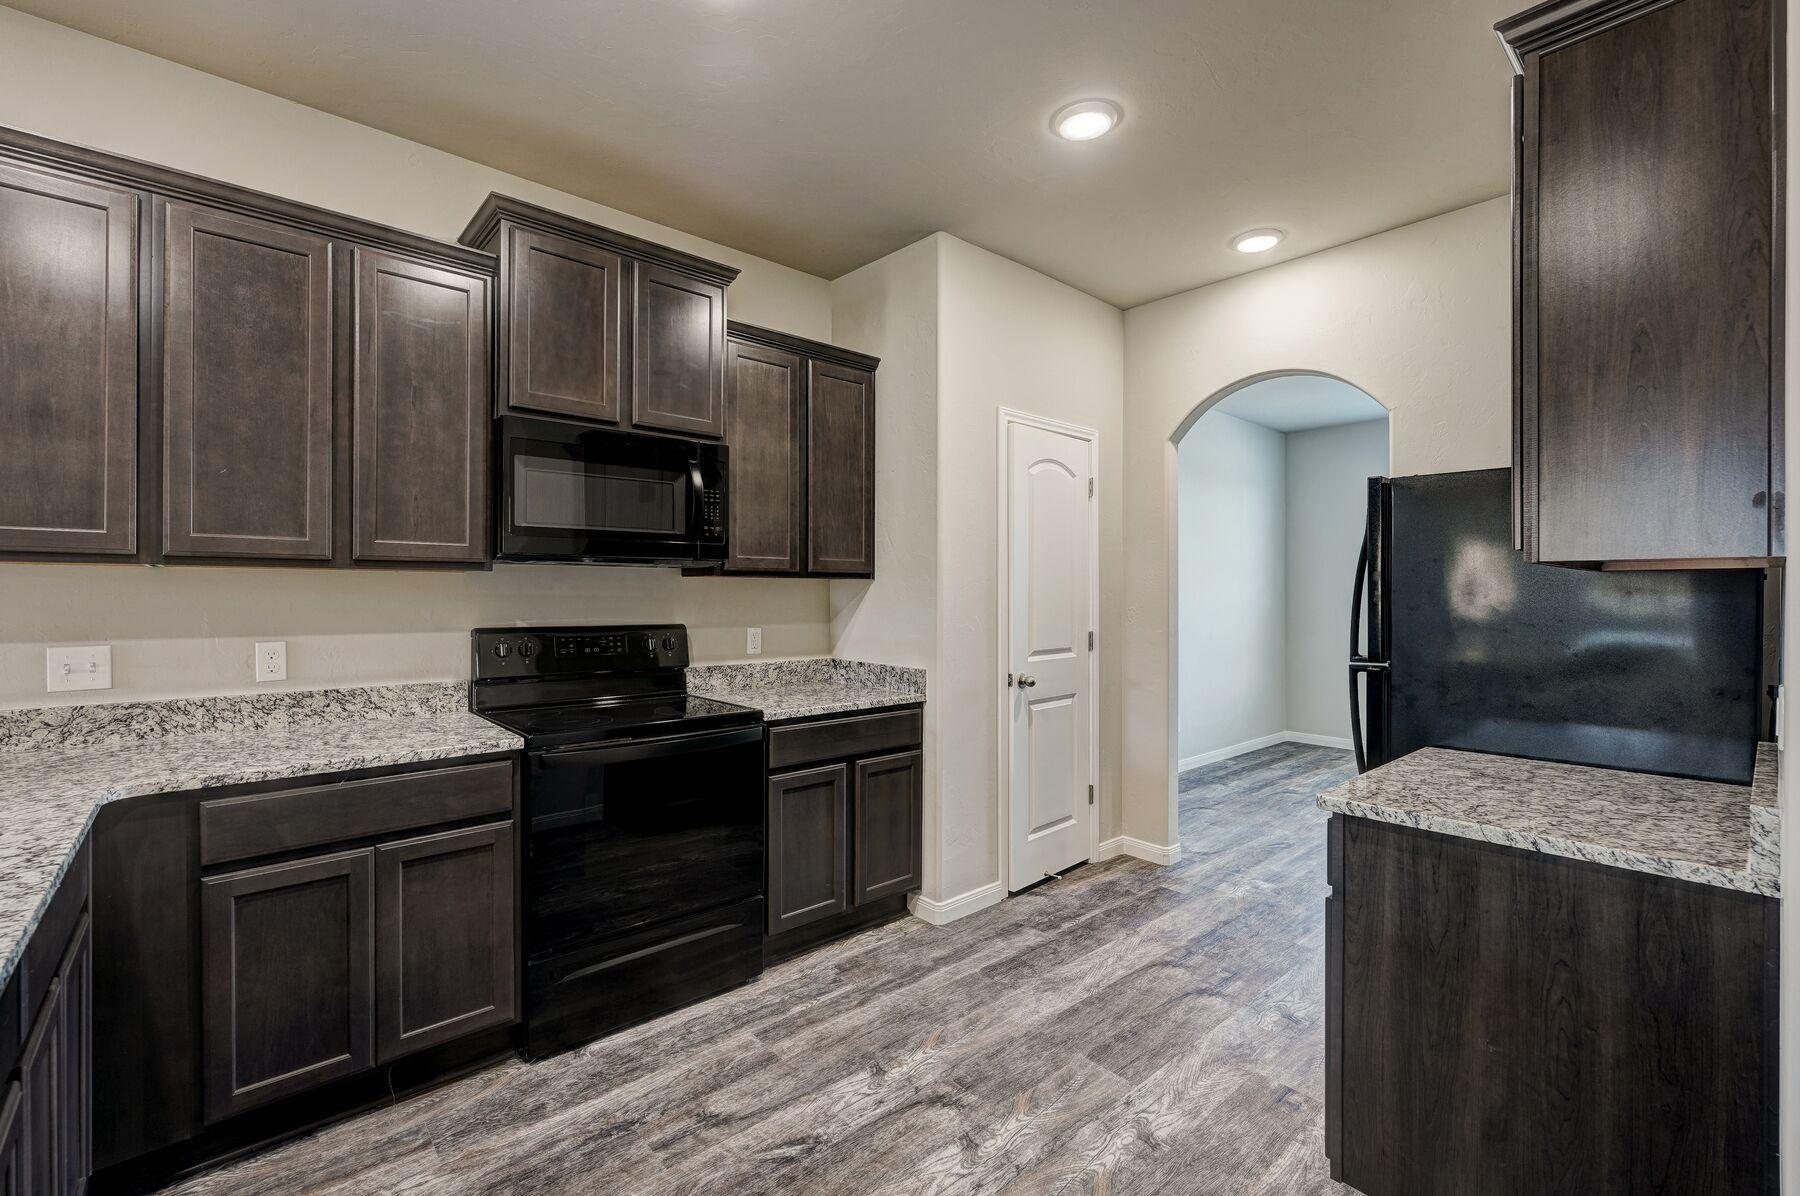 Kitchen featured in the Maple By LGI Homes in Oklahoma City, OK